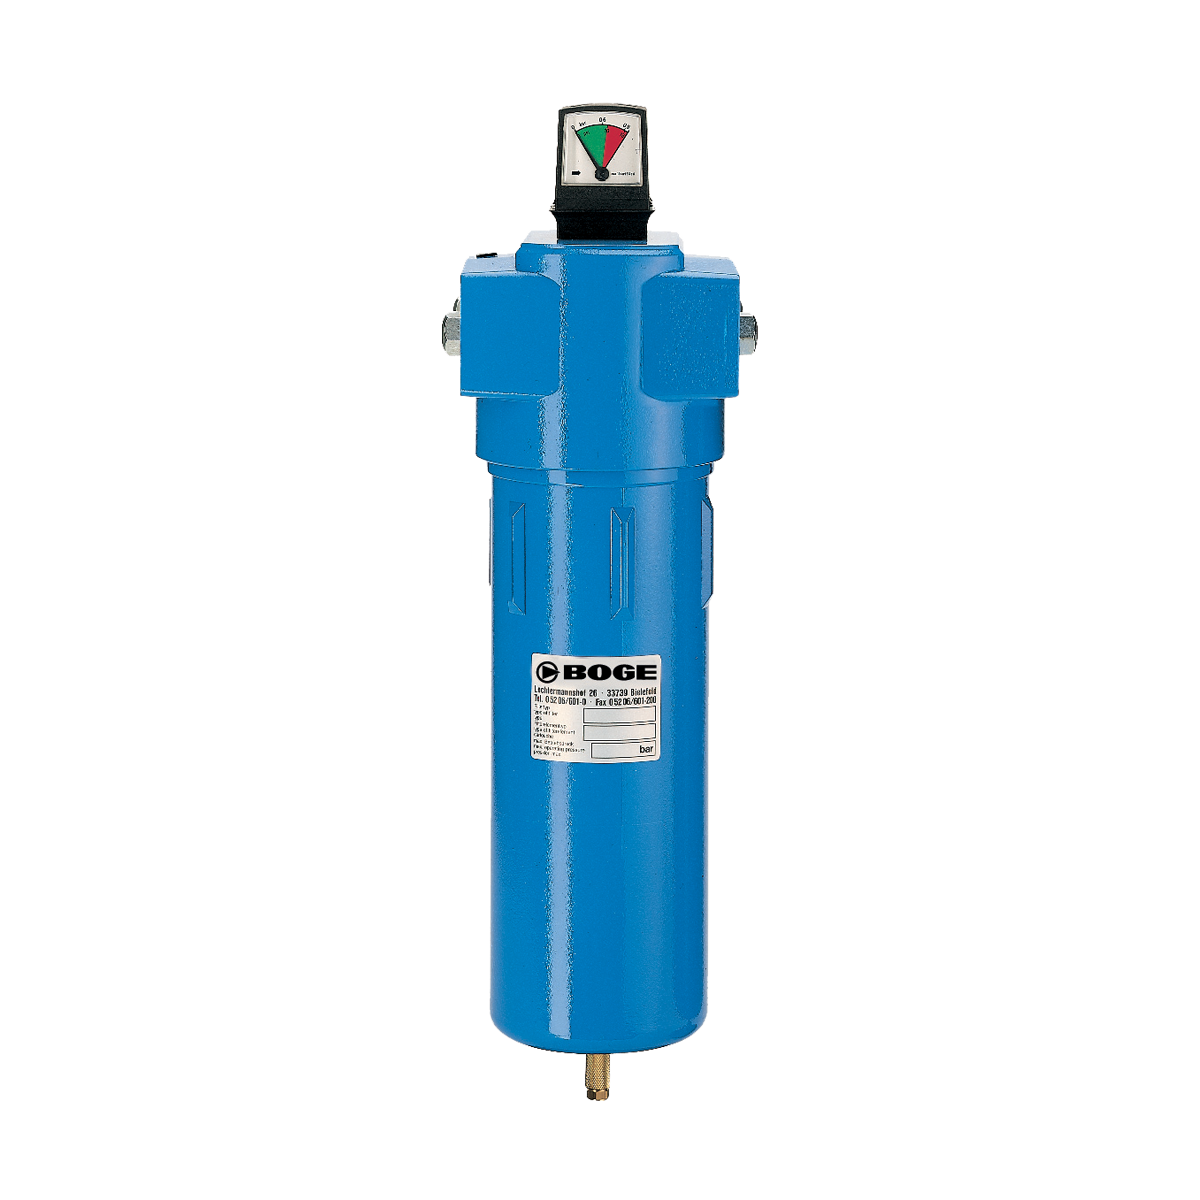 High pressure microfilter bar boge compressors